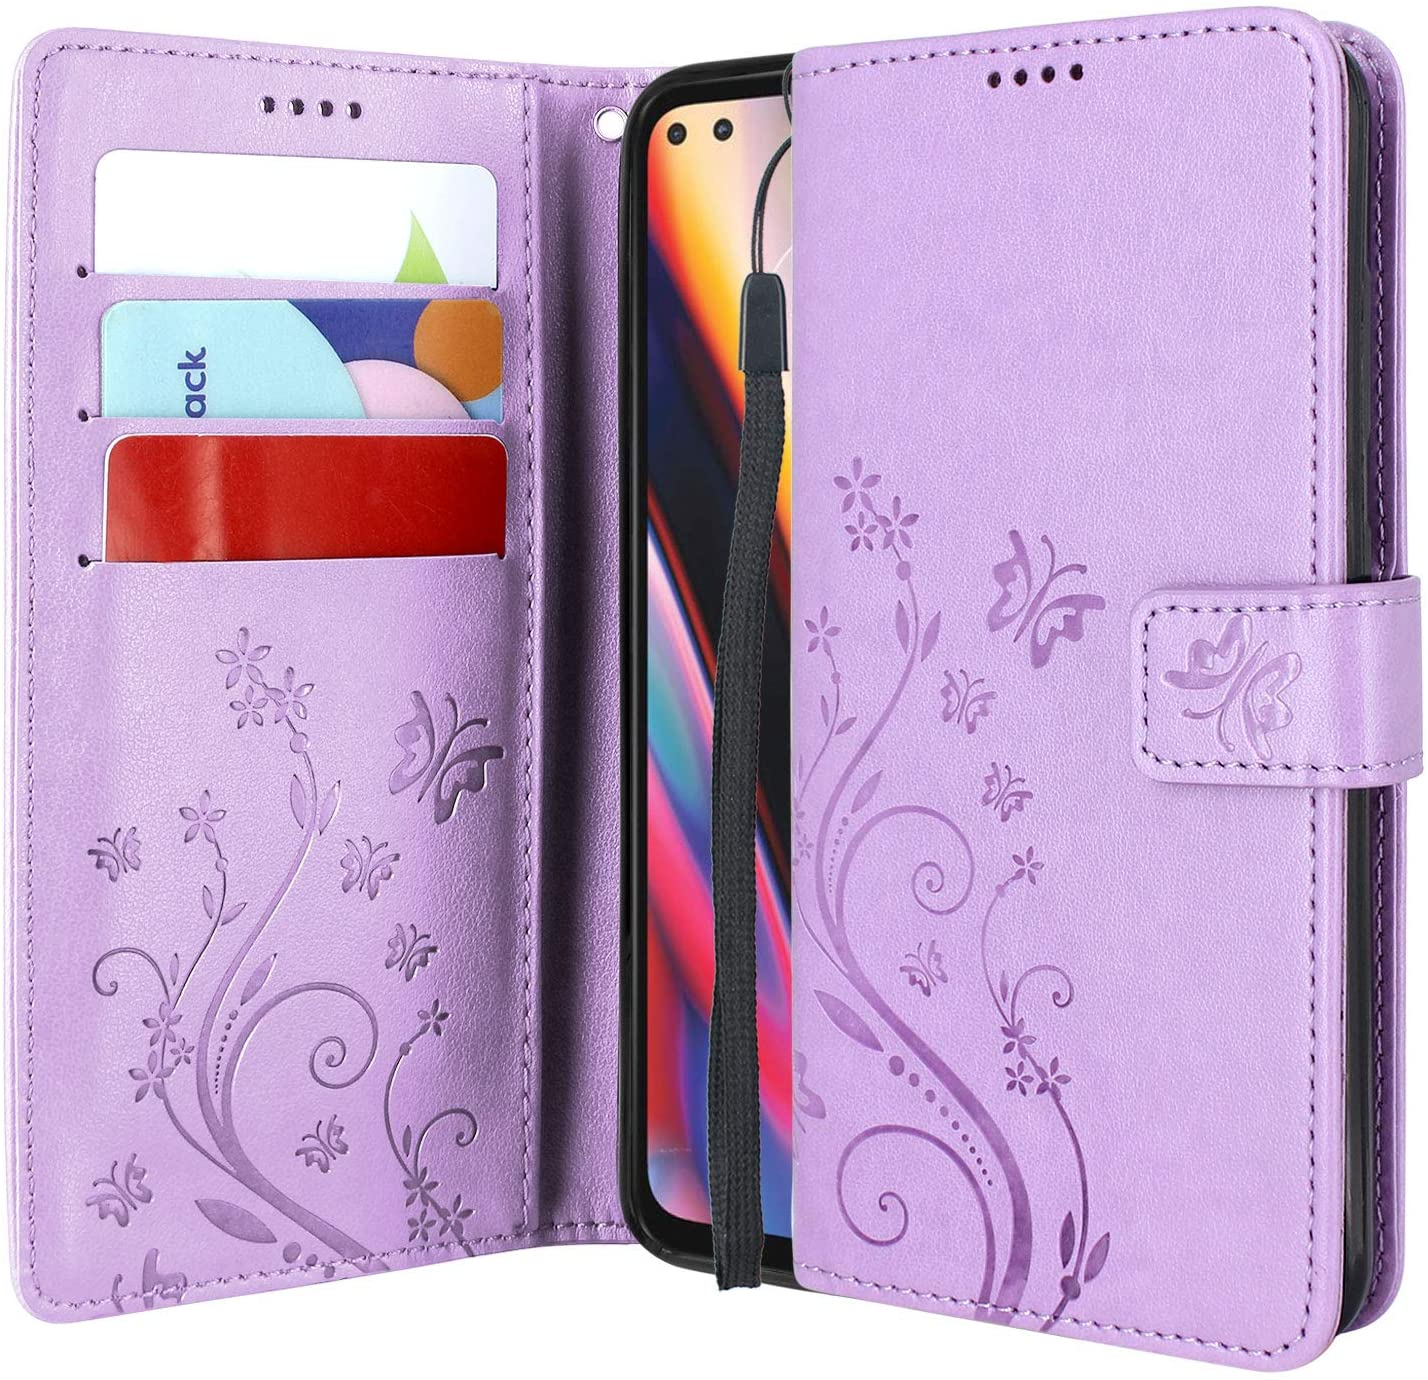 Lacass Floral Butterfly PU Leather Flip Wallet Case Cover Kickstand with Card Slots and Wrist Strap for Motorola Moto One 5G 2020 (Light Purple)